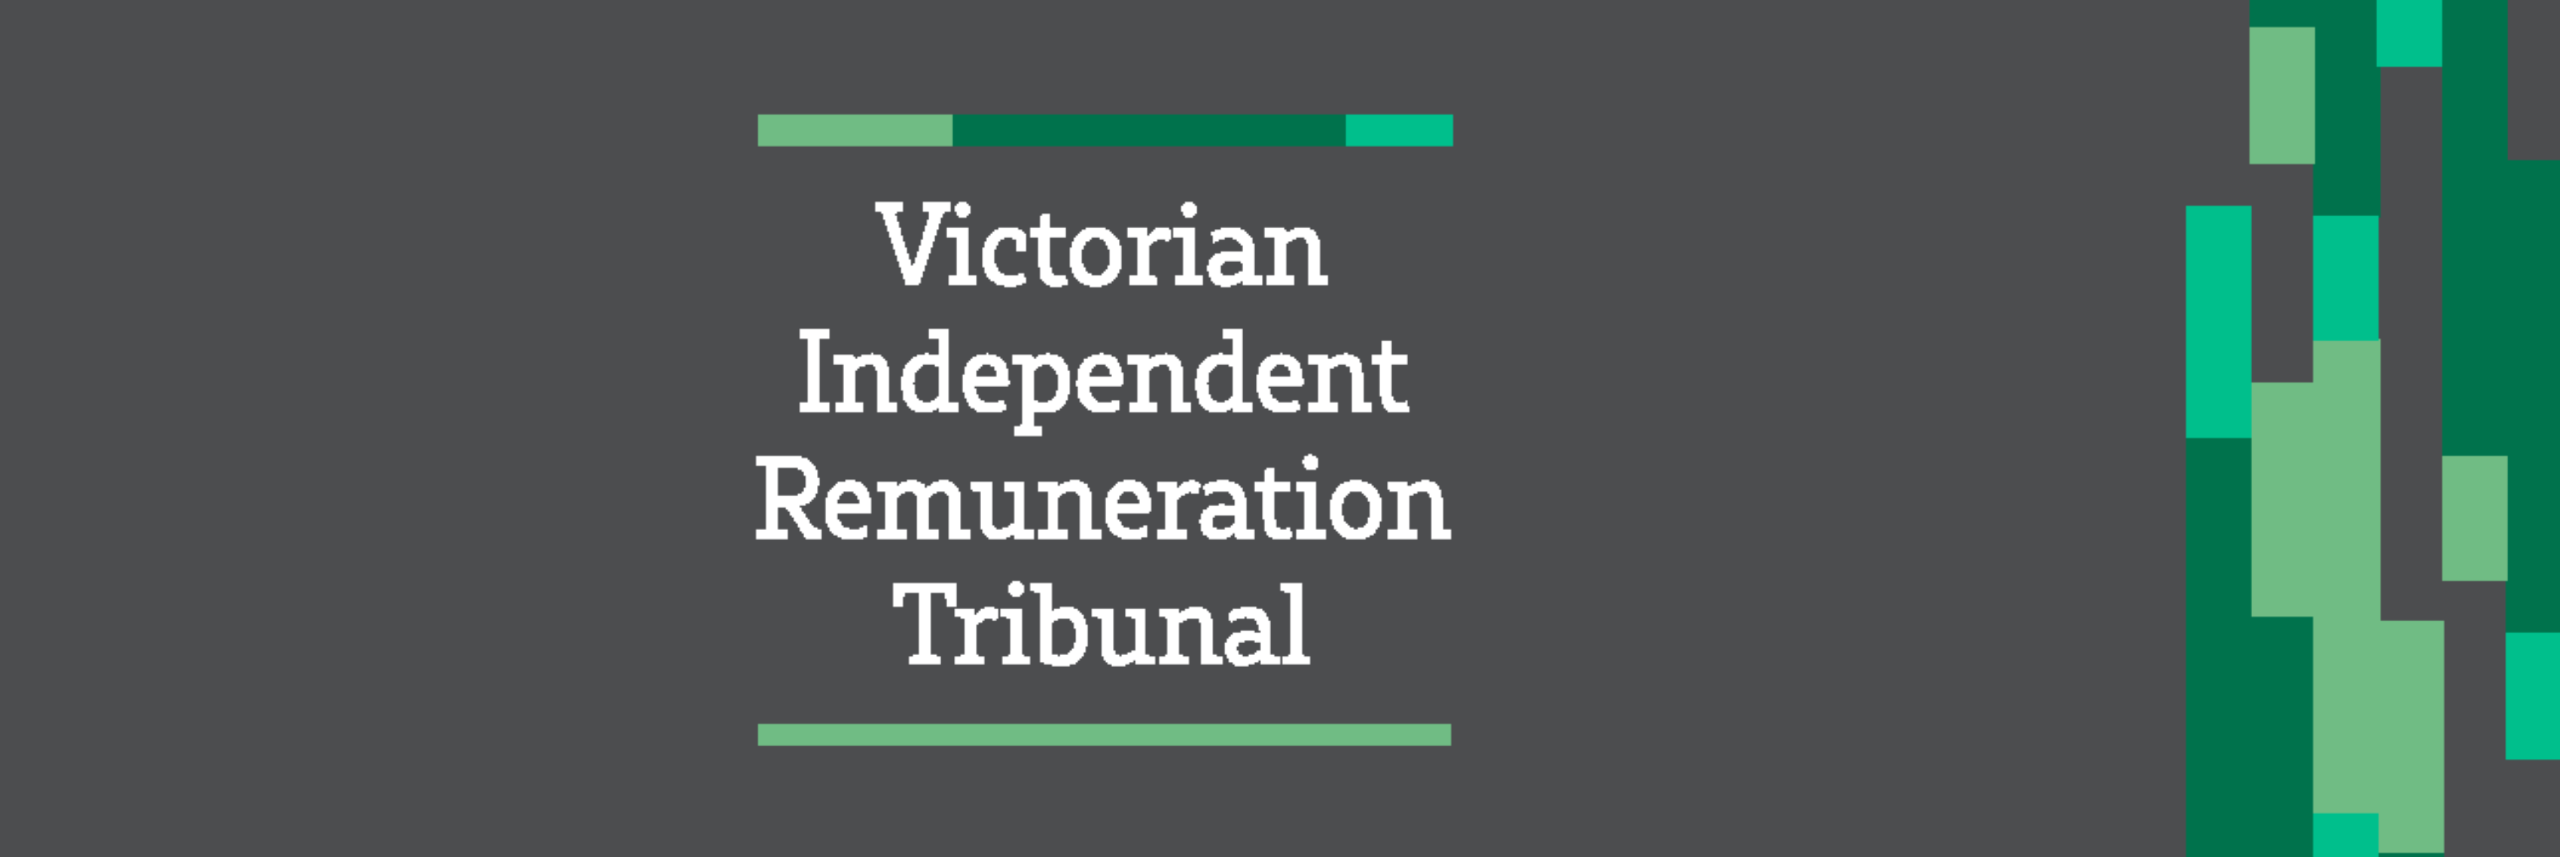 Victorian Independent Remuneration Tribunal logo